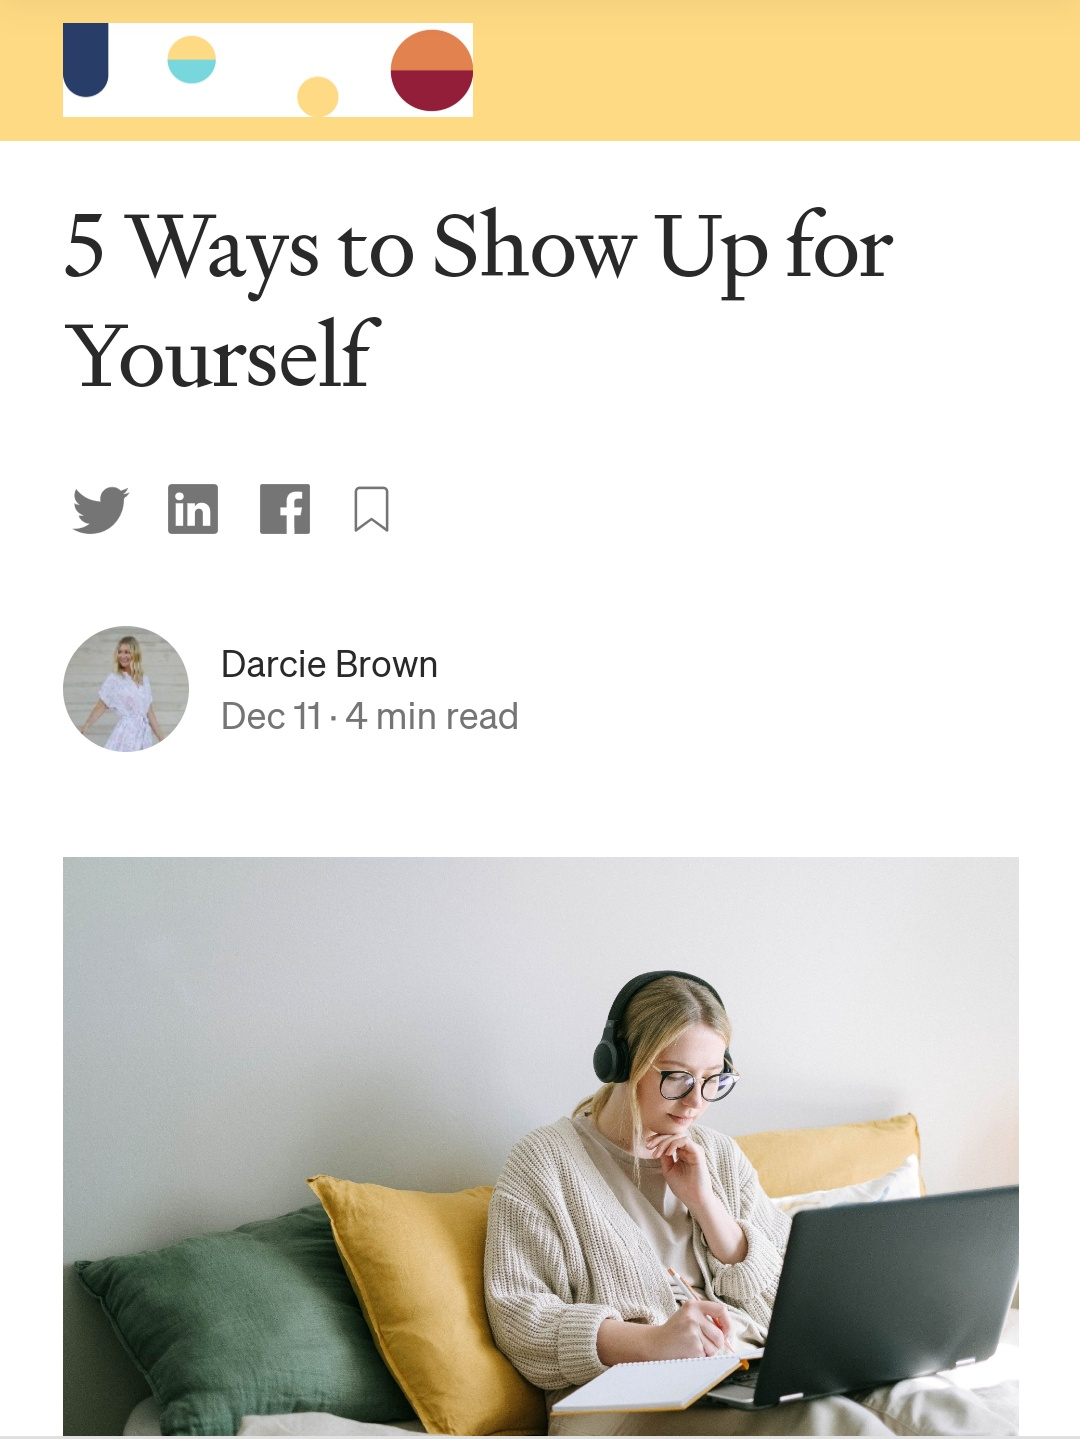 5 Ways to Show Up for Yourself - Darcie Brown, LMFT on Curio